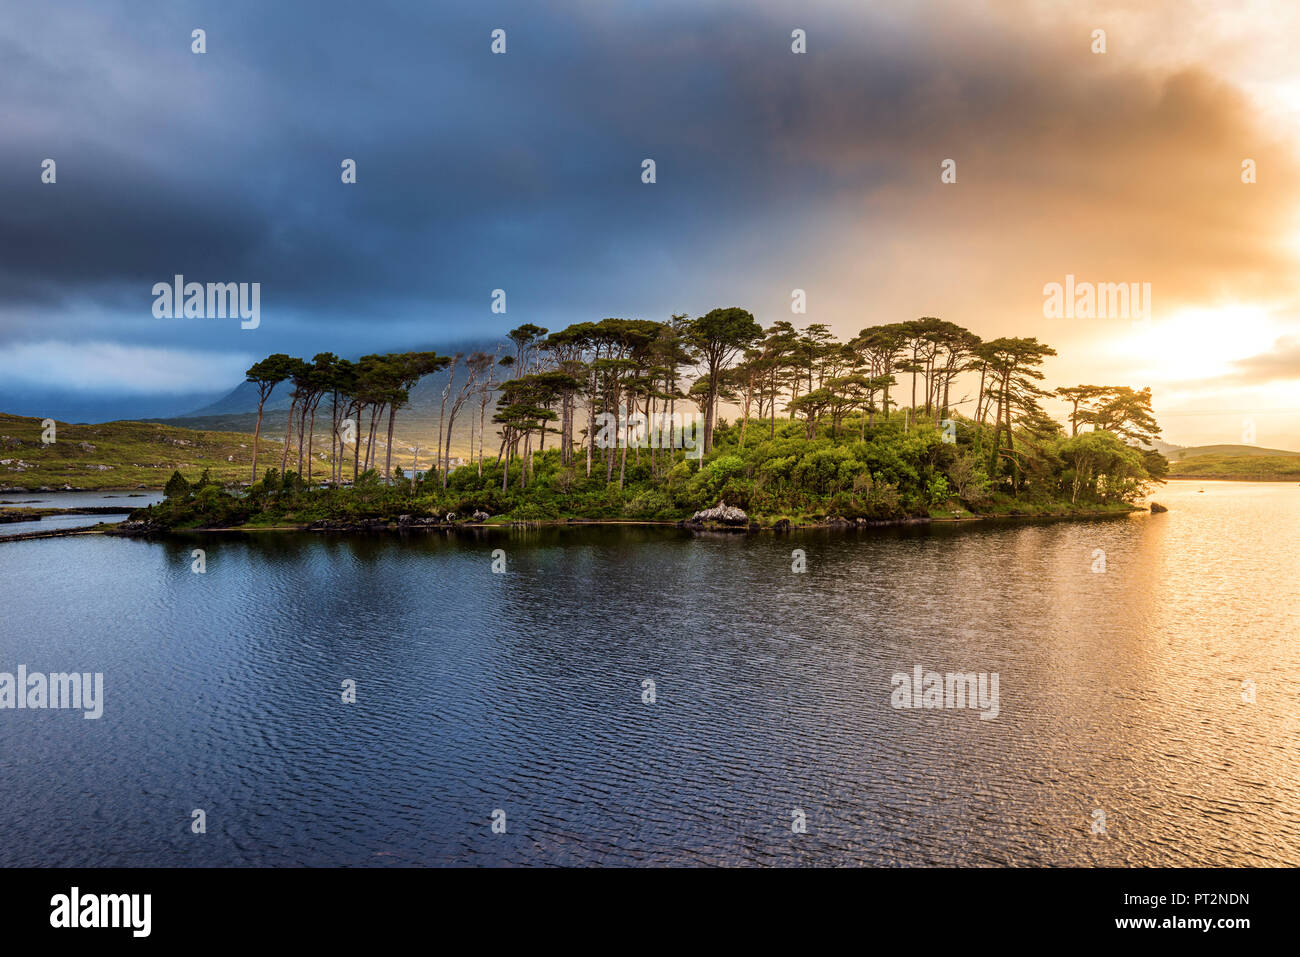 Galway province